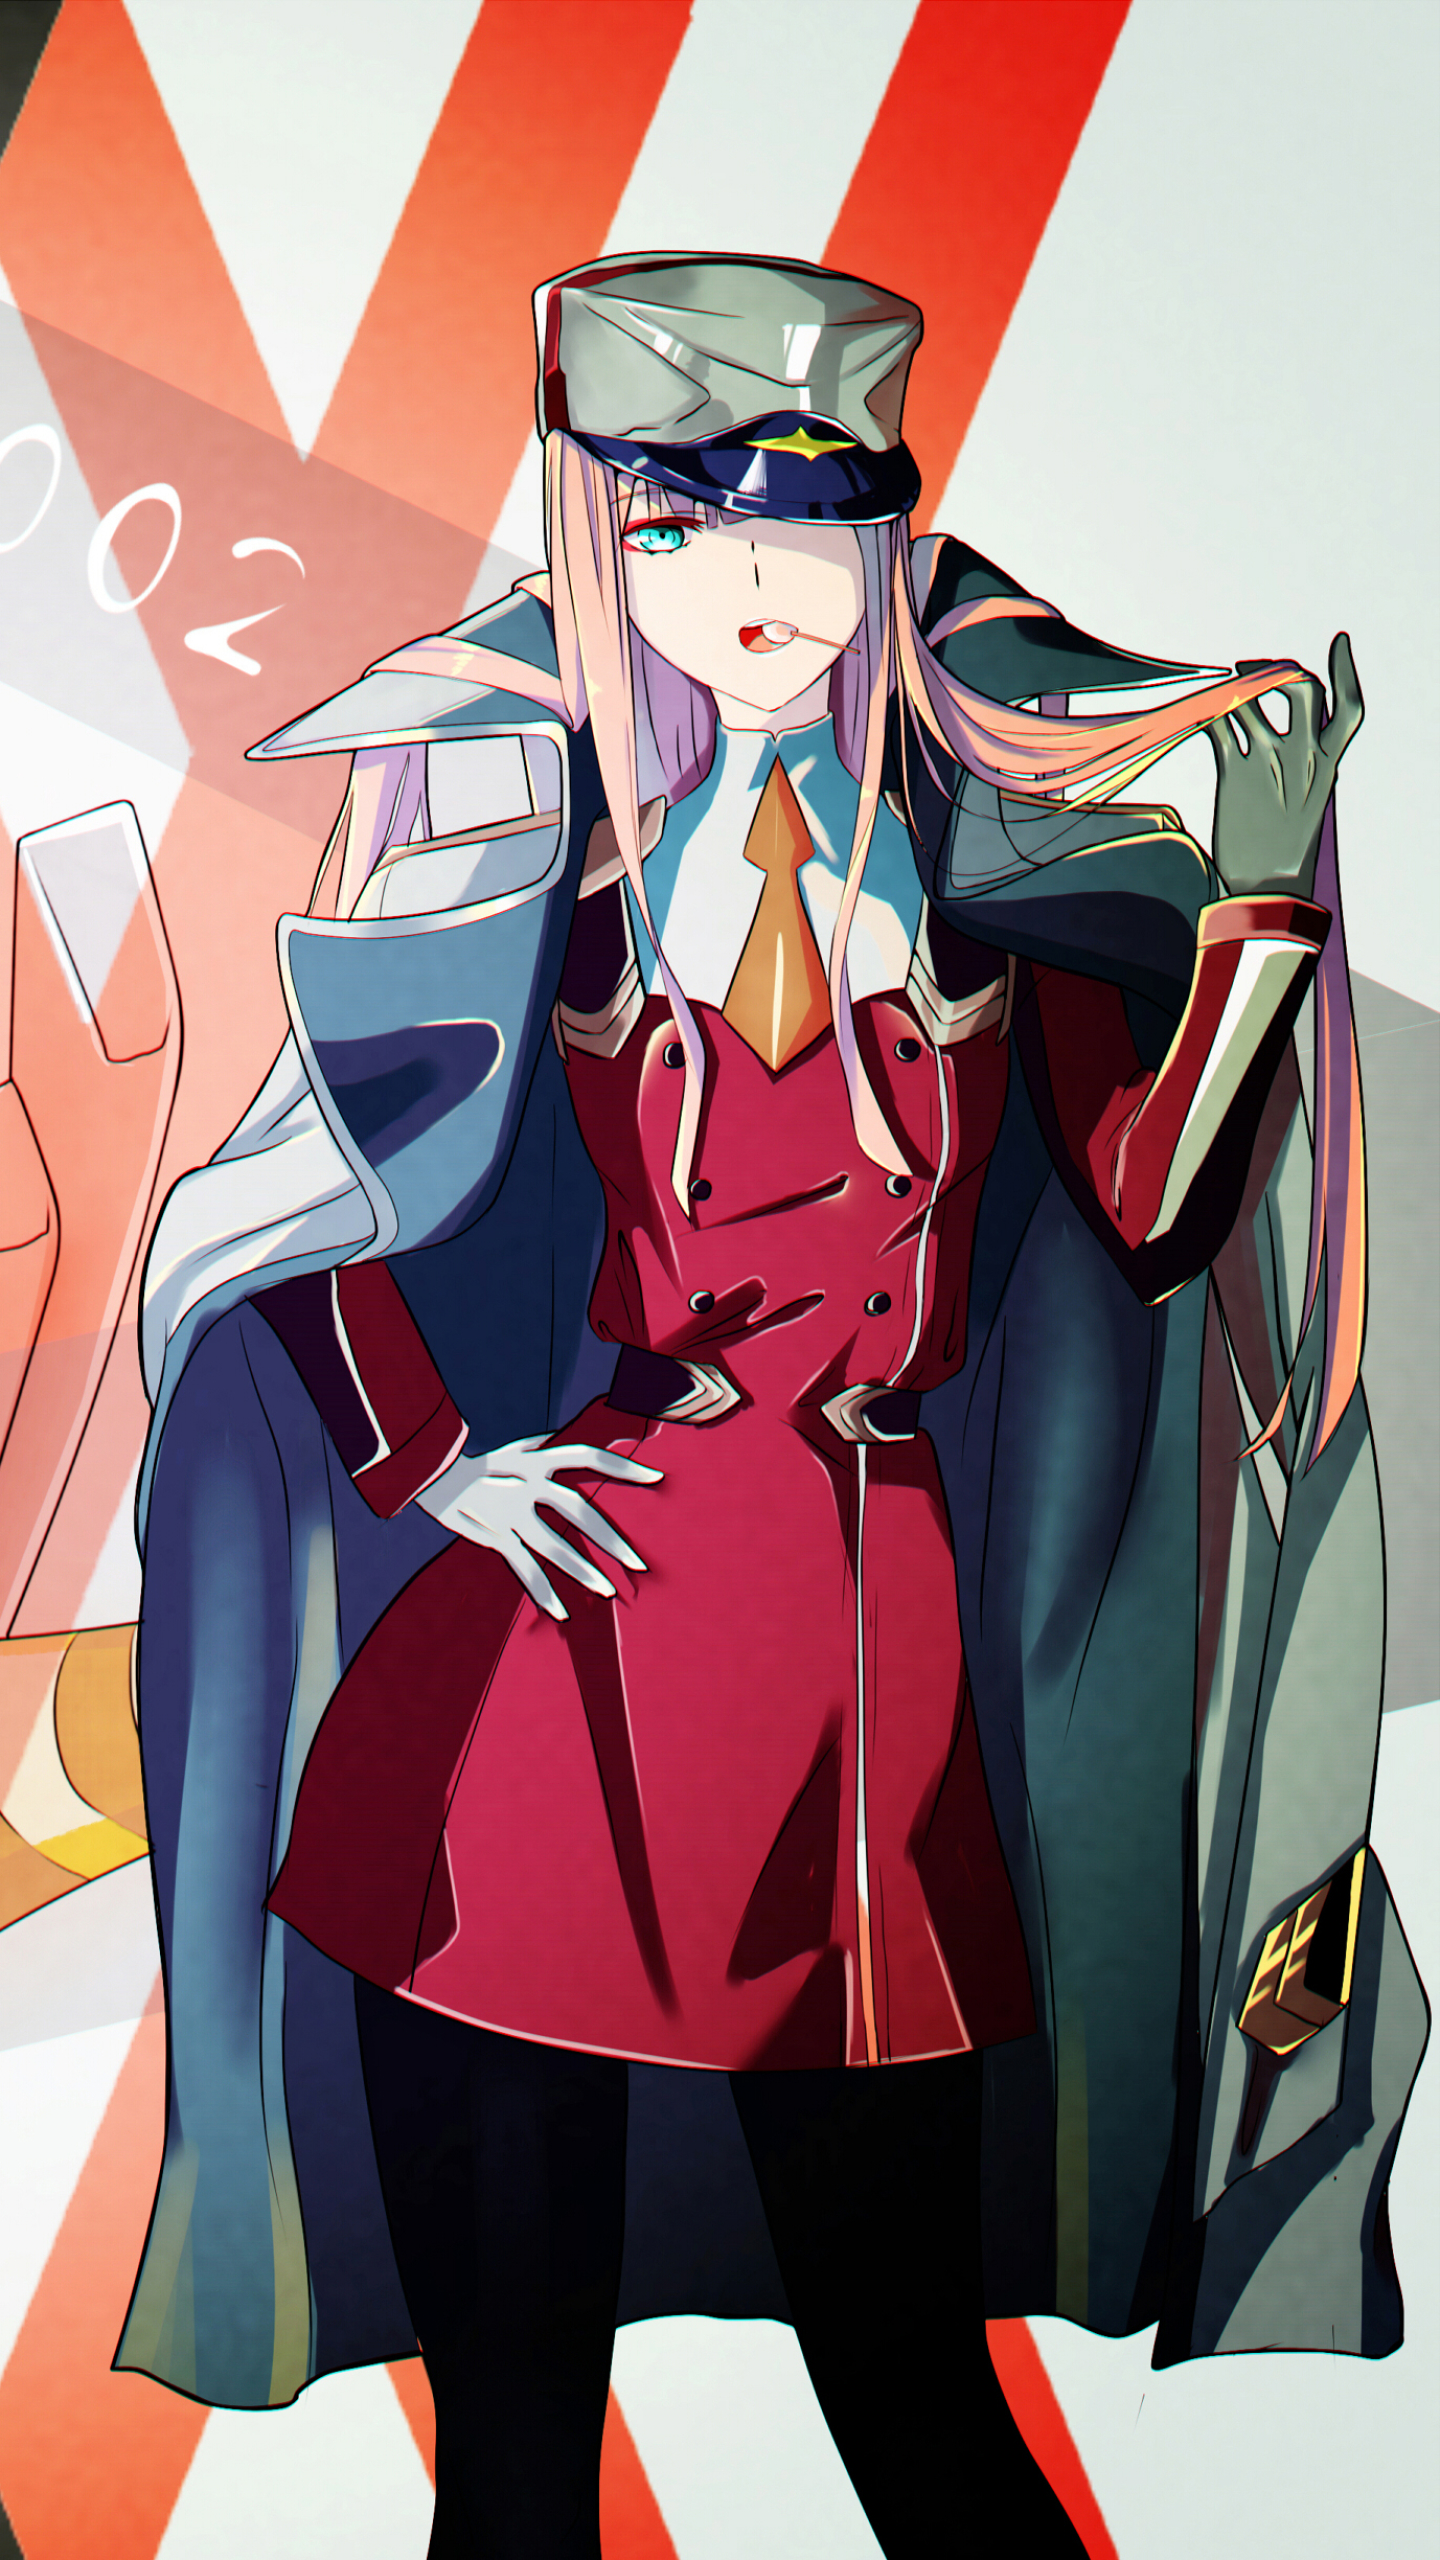 165 Darling In The Franxx Apple Iphone 7 750x1334 Wallpapers